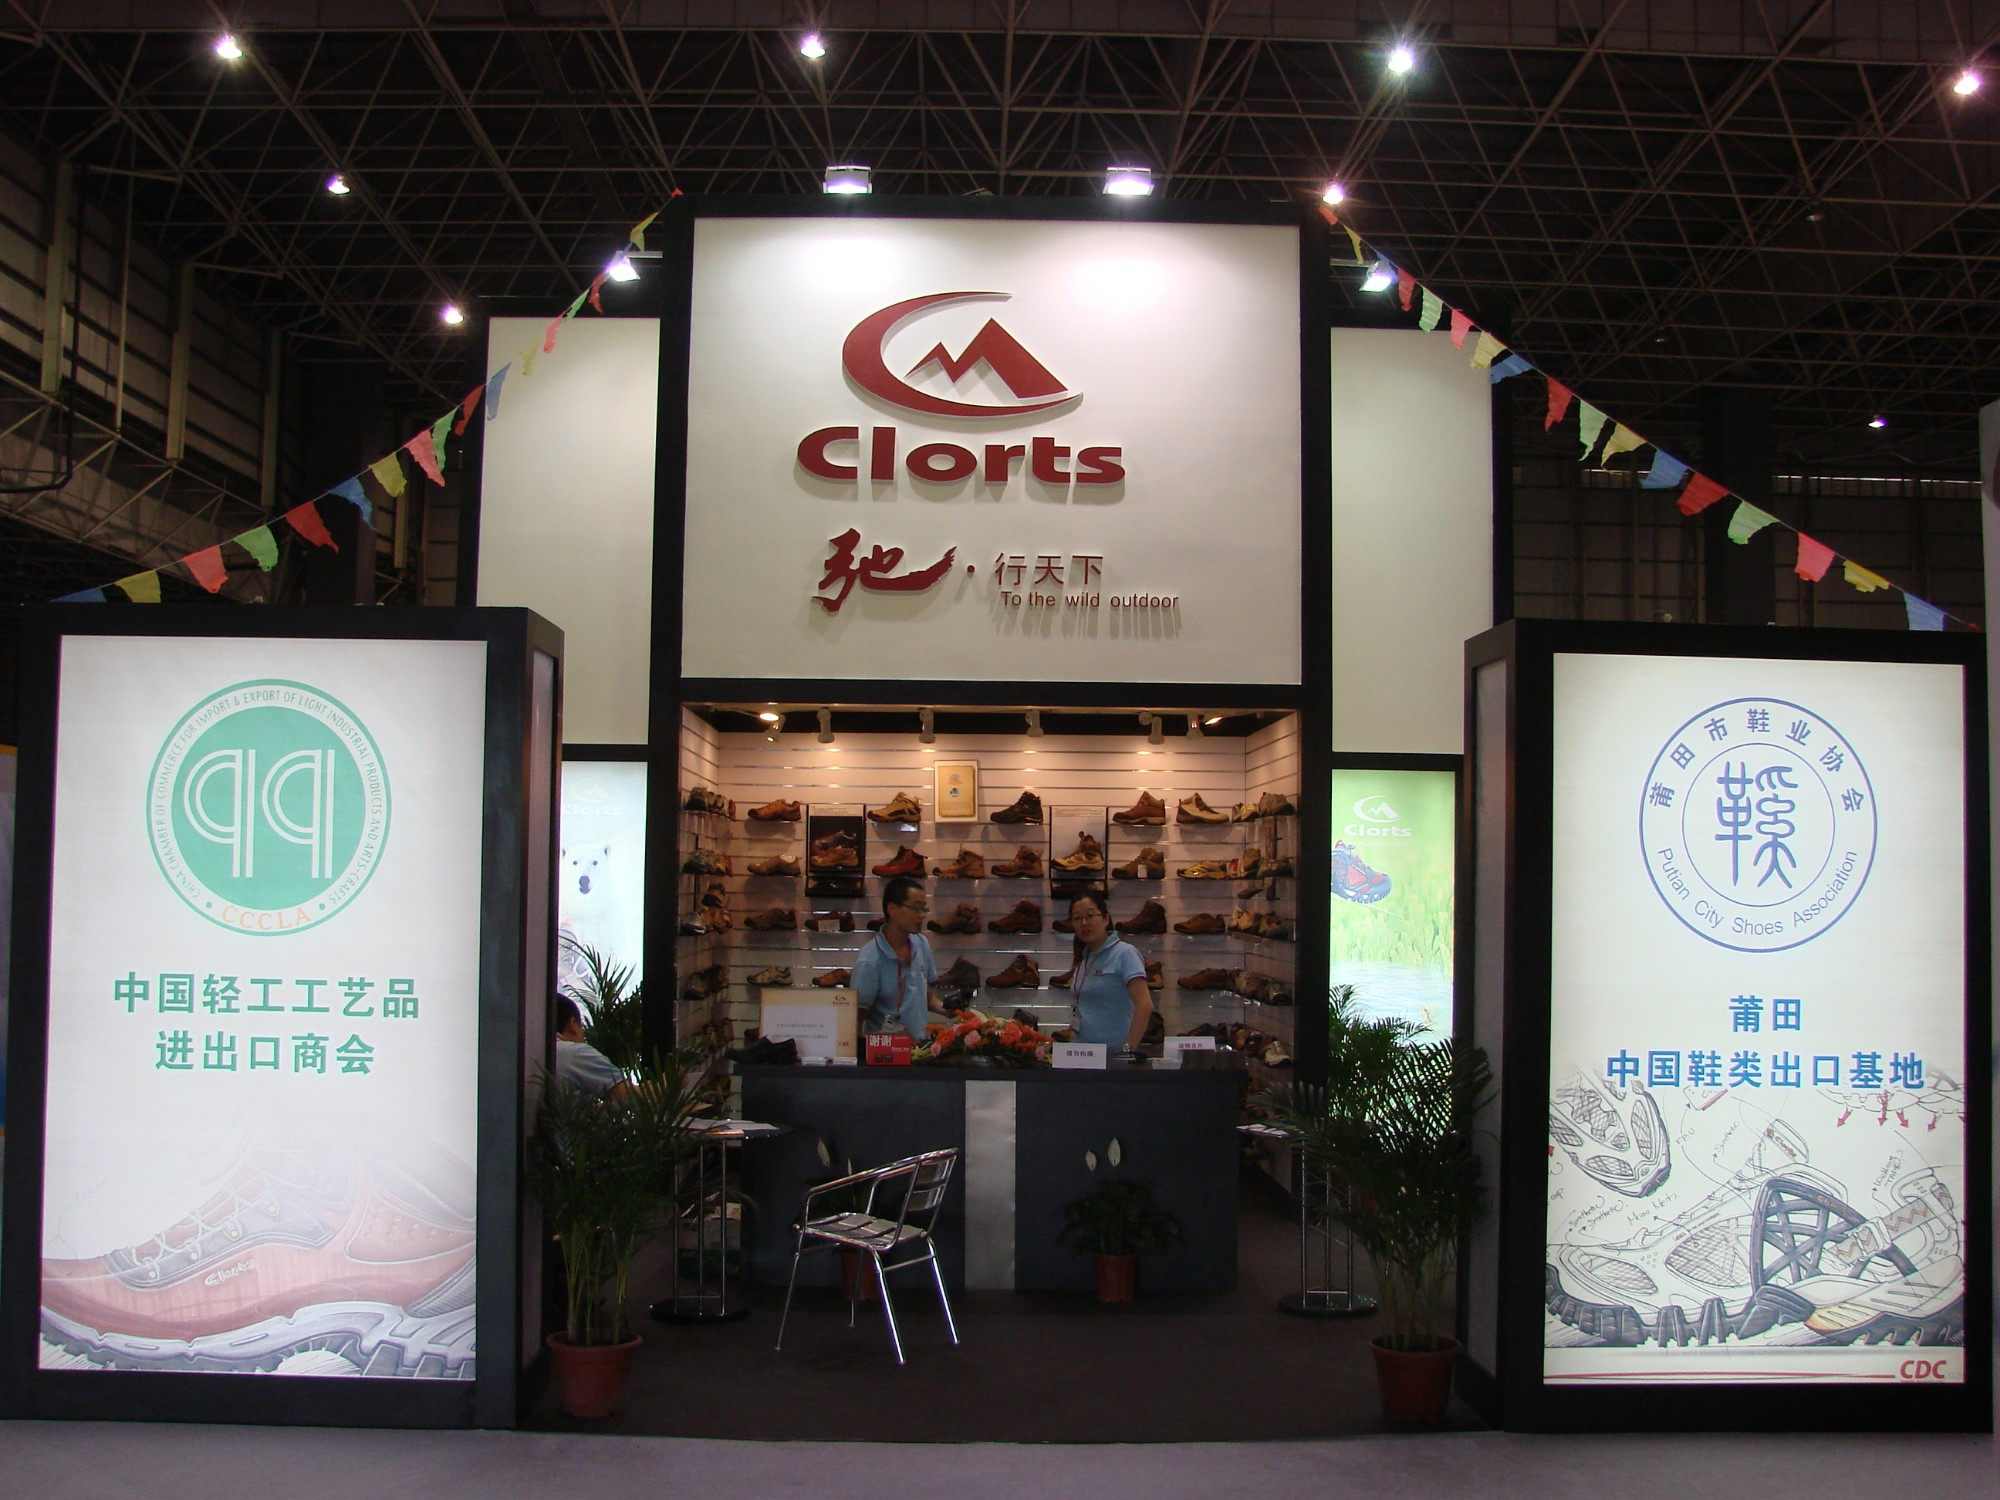 May 2009 The 9th China Dongguang International Footwear & Shoe Machinery Fair